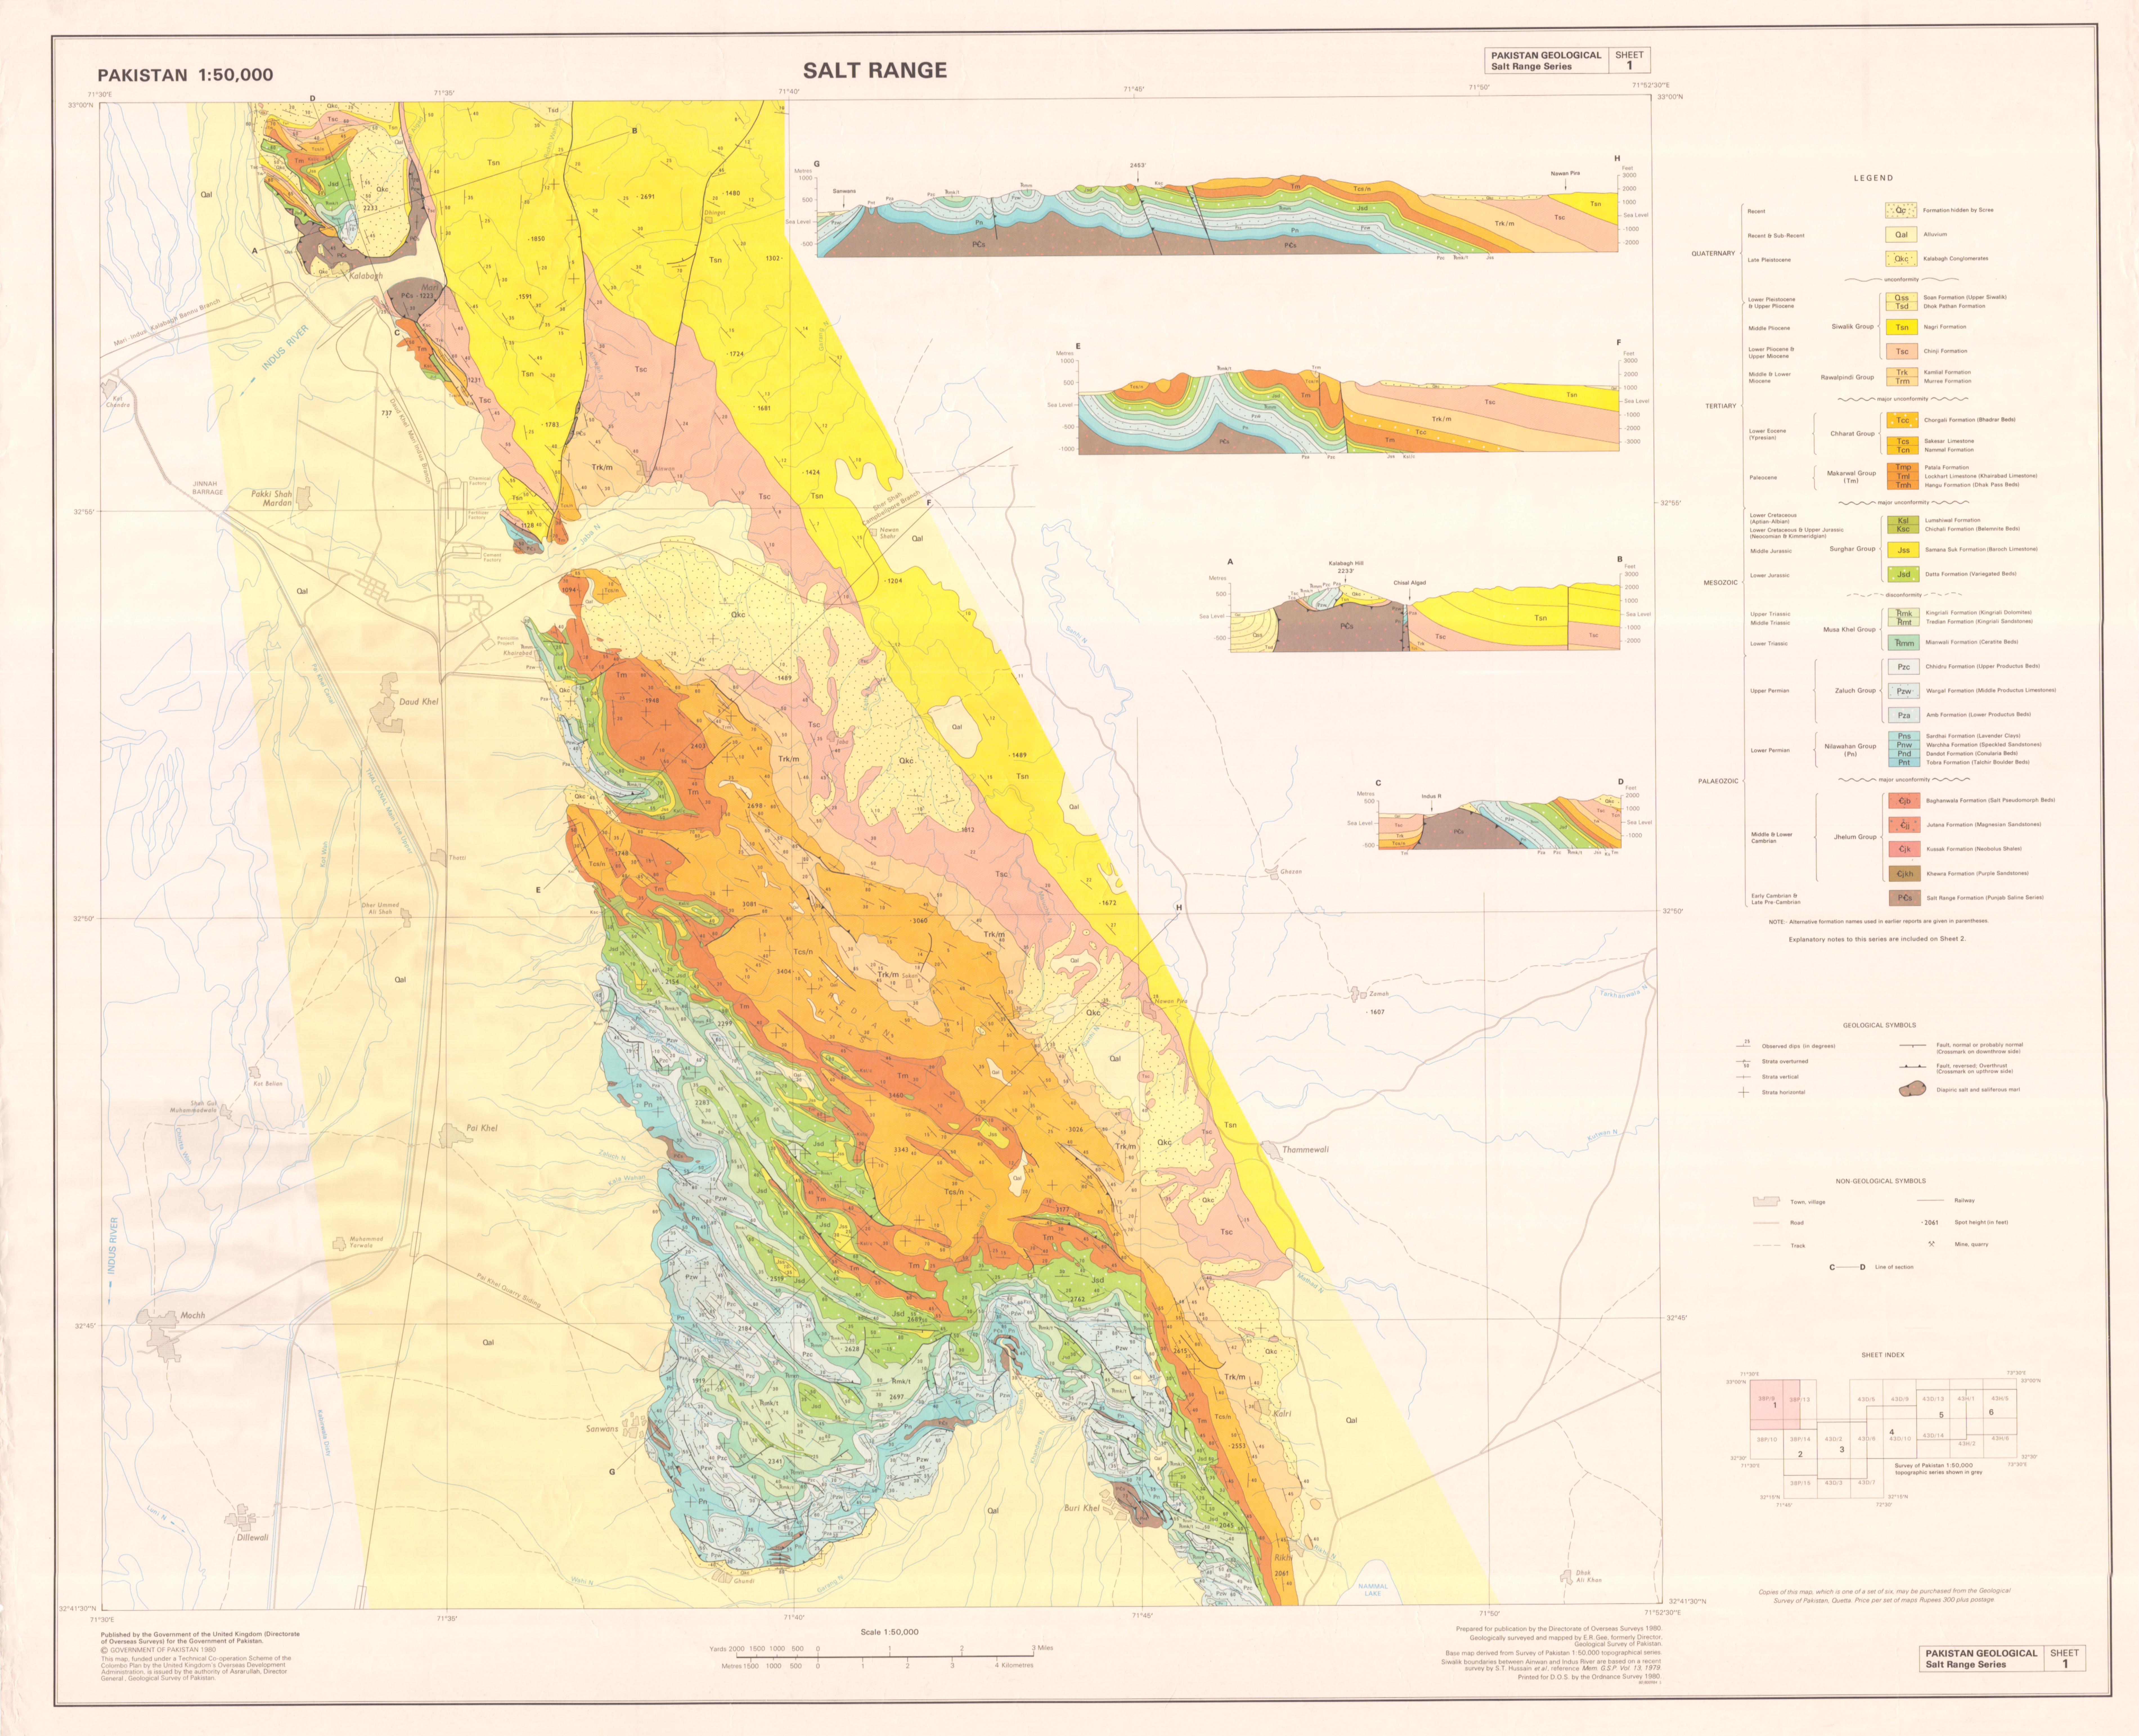 wjec geology coursework planning sheet